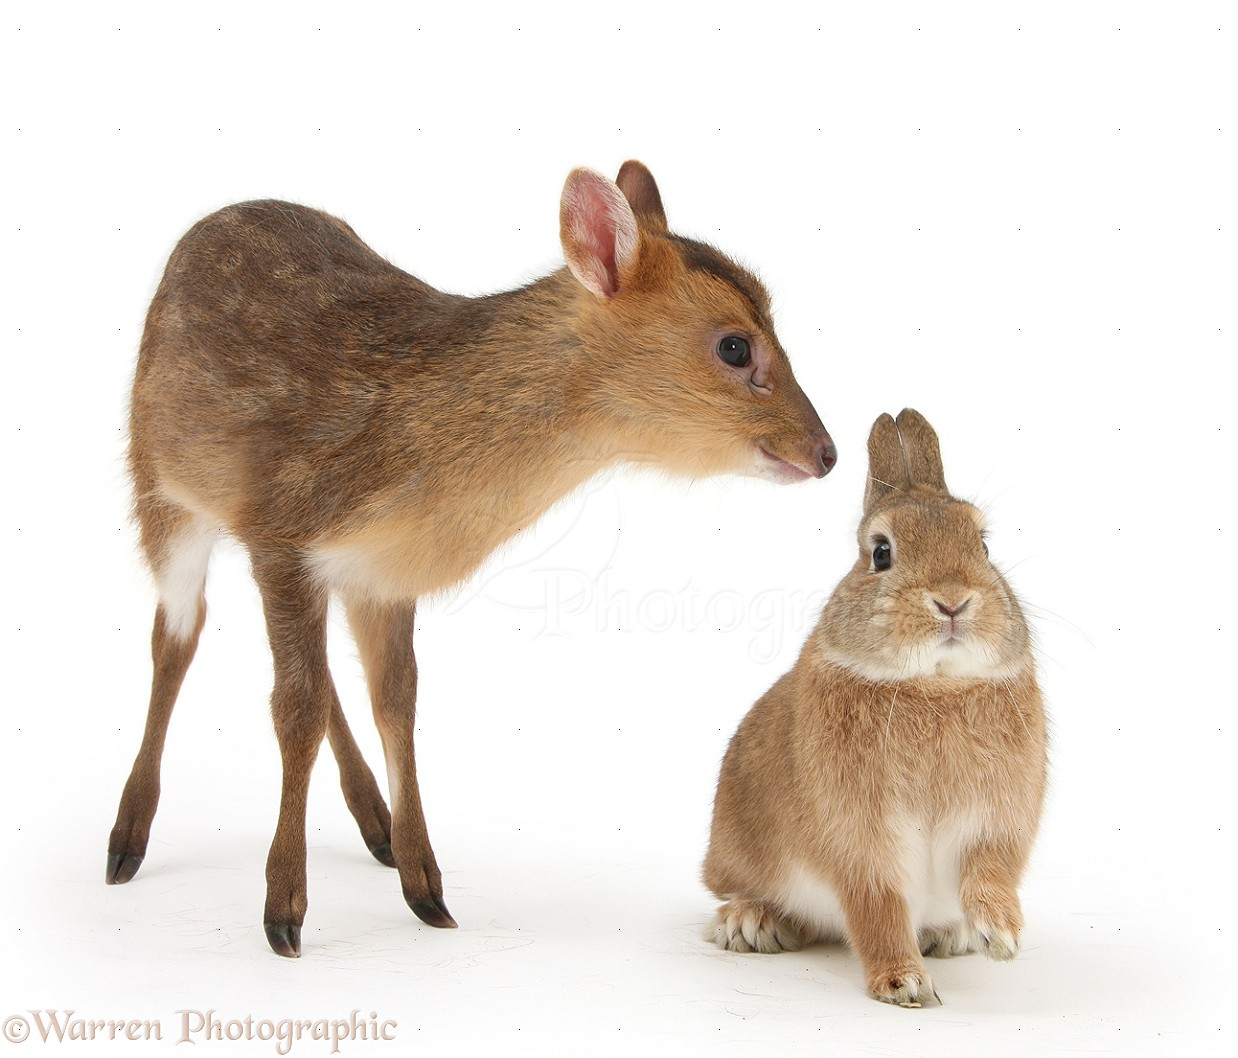 pet mini deer images galleries with a